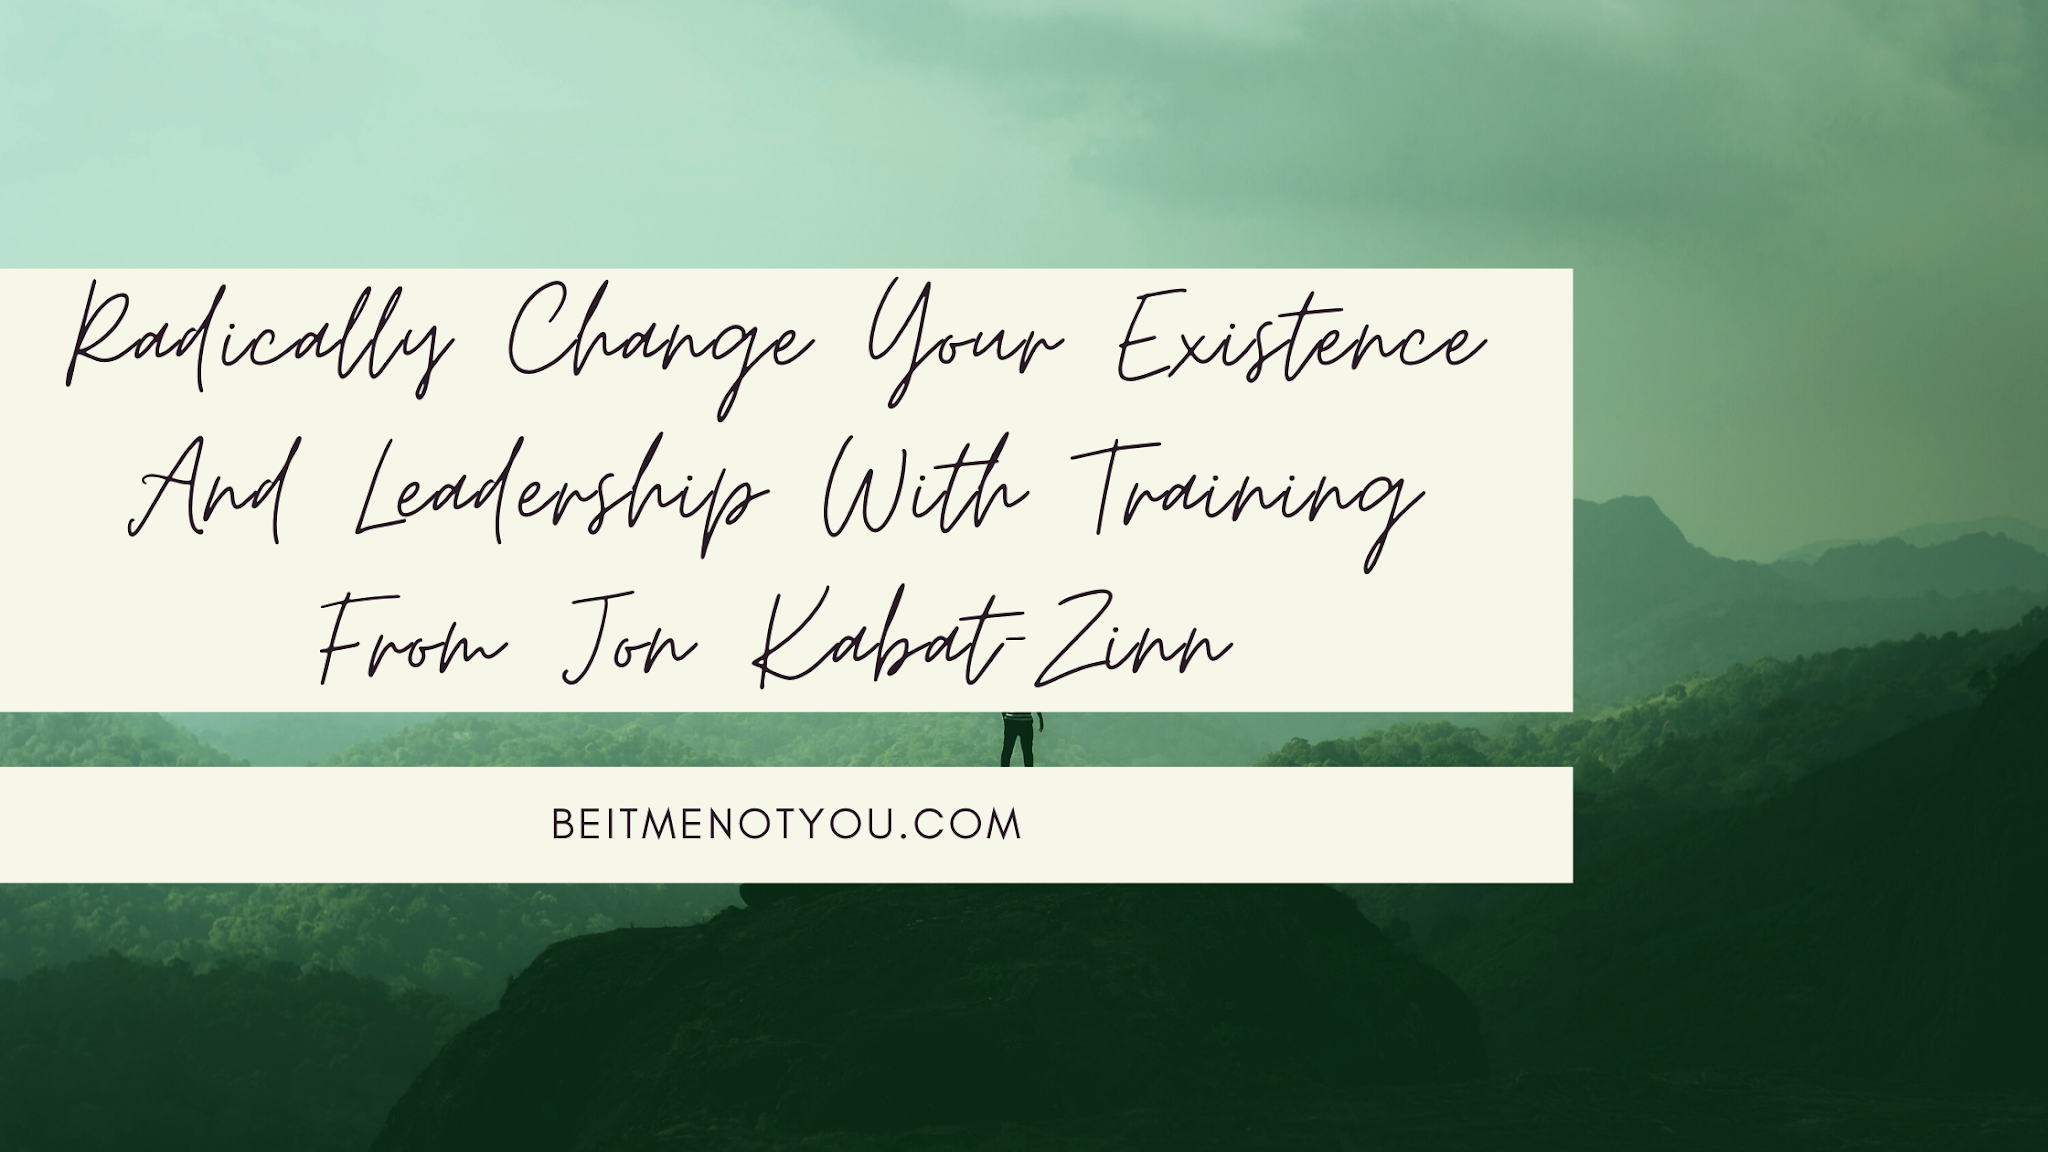 Radically Change Your Existence And Leadership With Training From Jon Kabat-Zinn